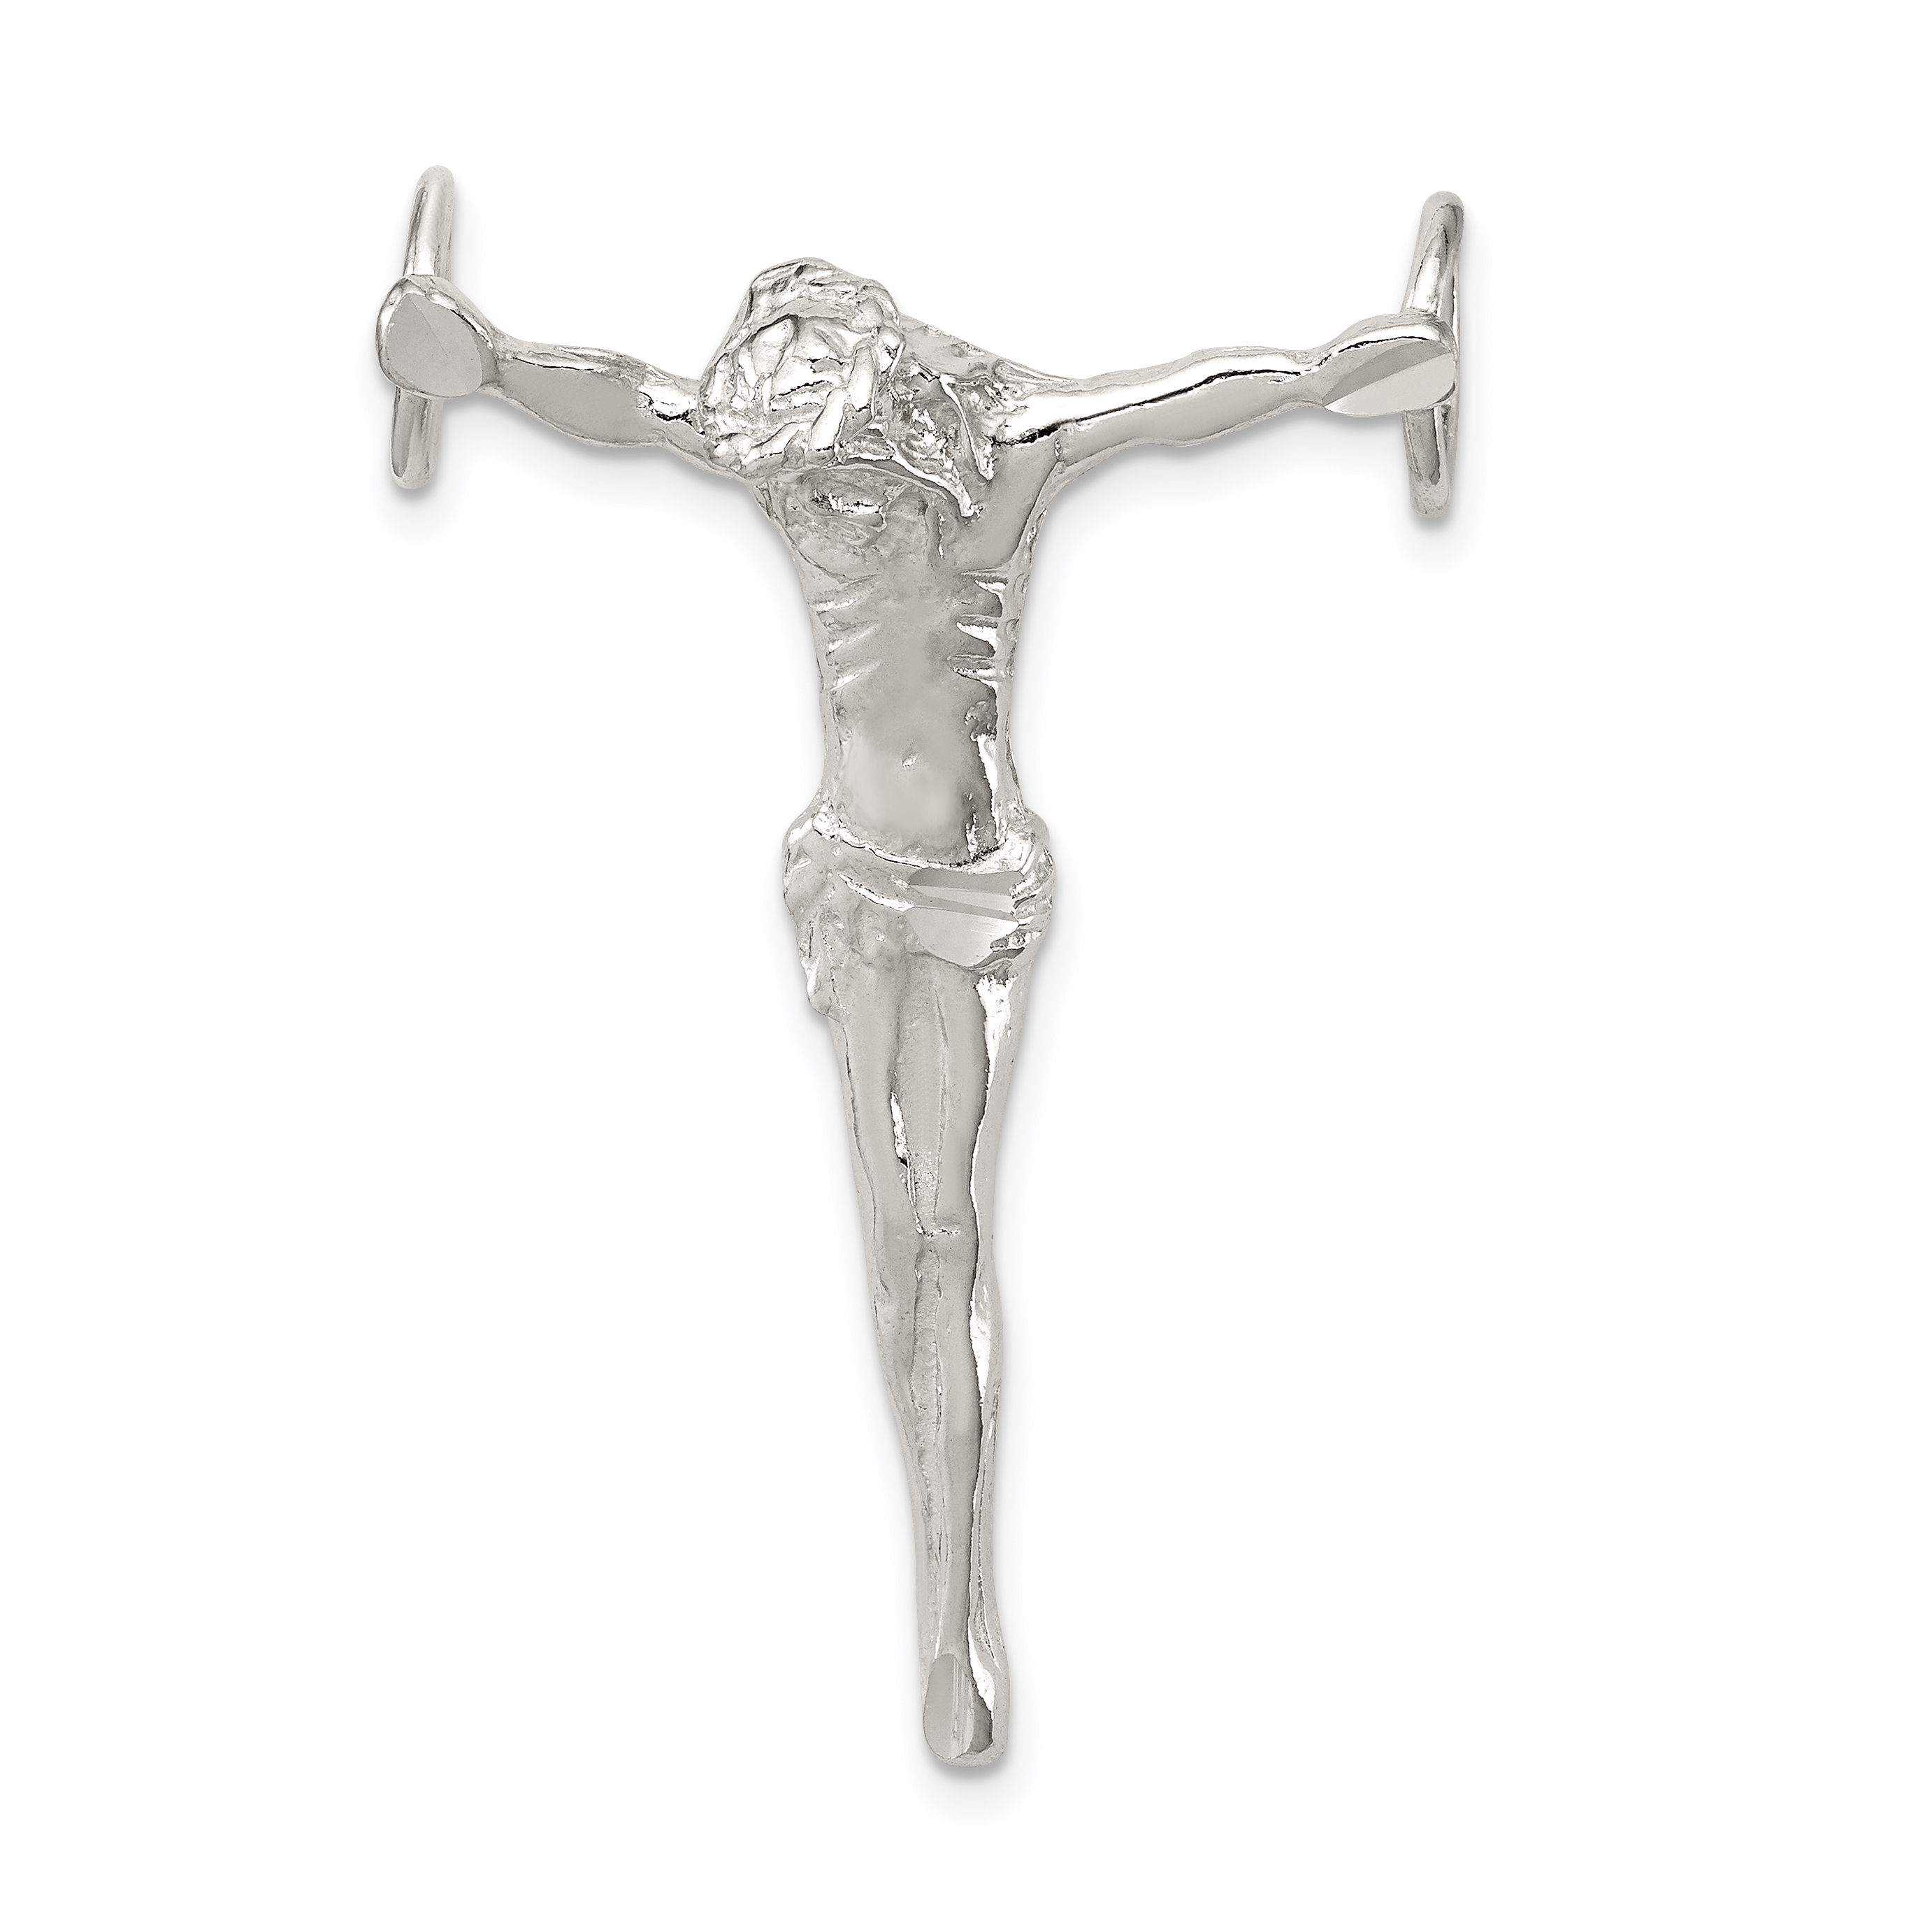 925 Sterling Silver Jesus Cross Religious Large Pendant Charm Necklace Fine Jewelry Gifts For Women For Her